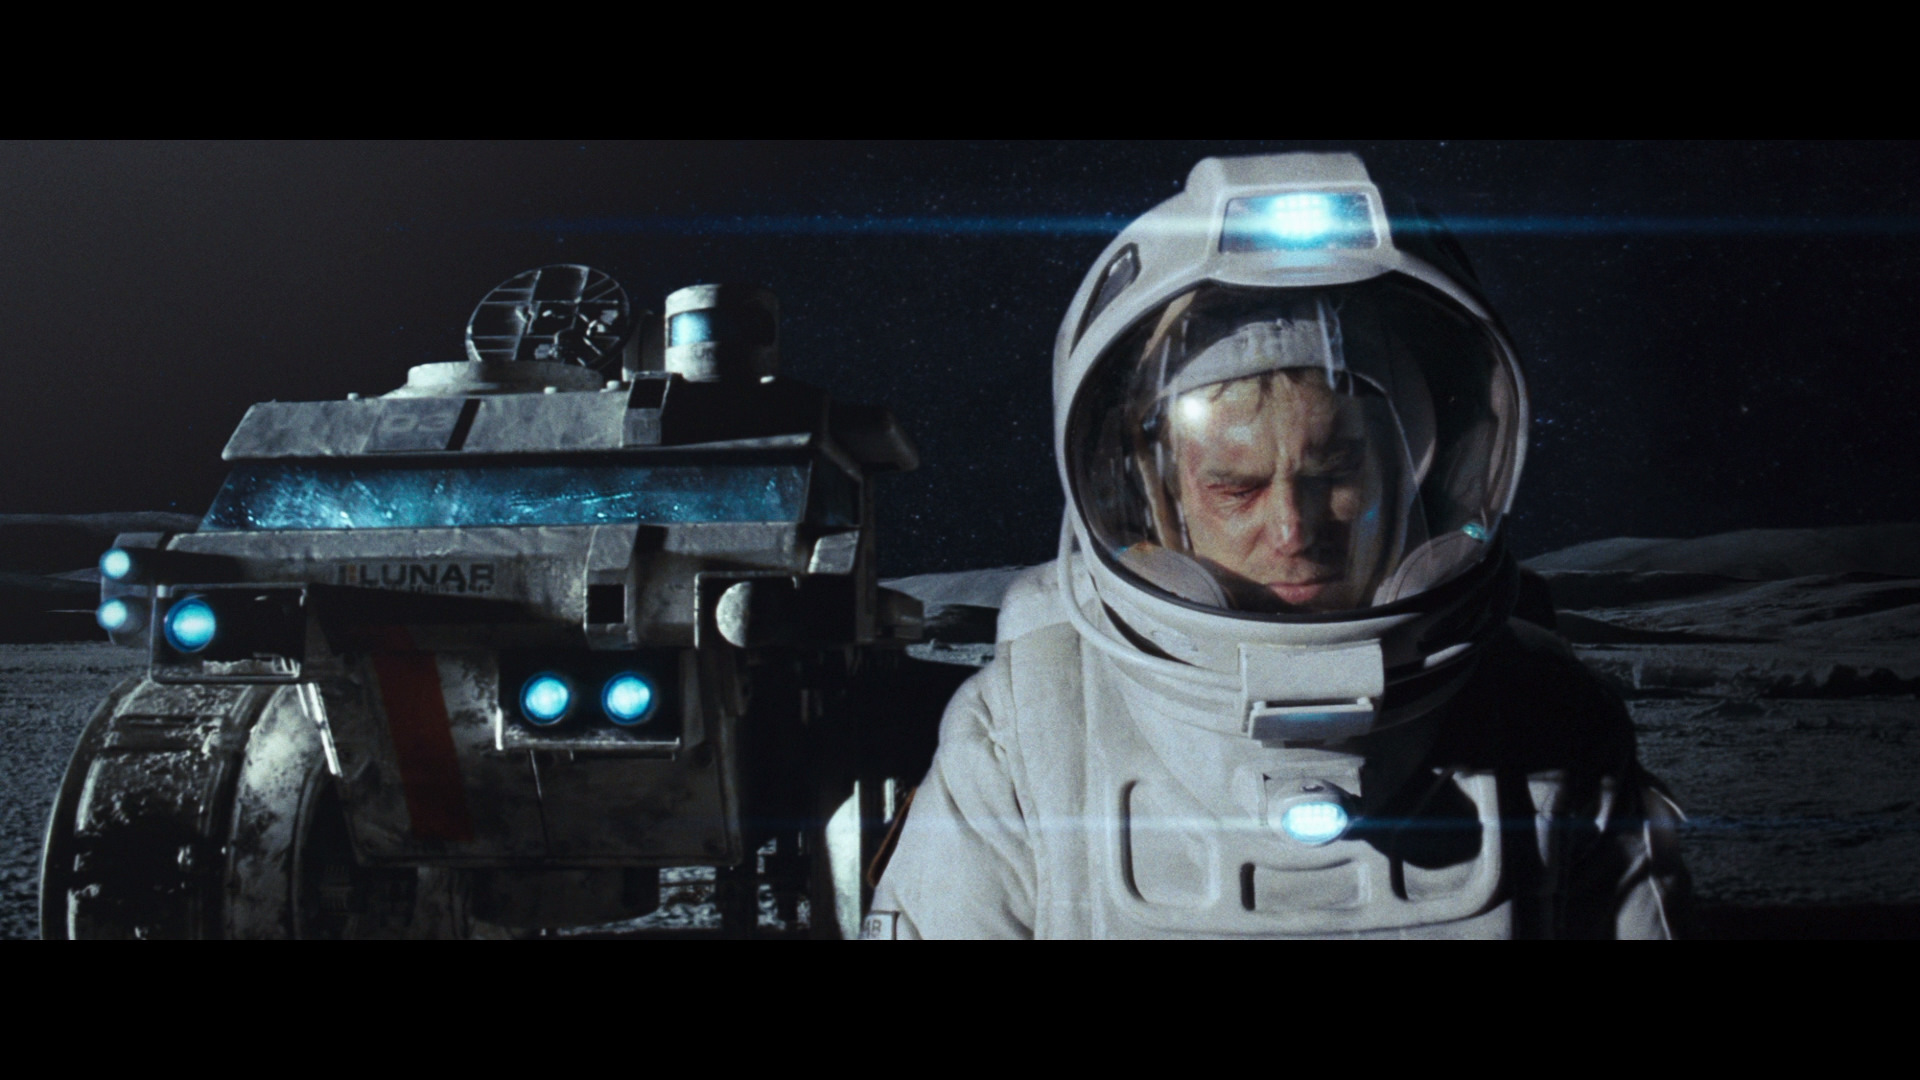 Movie about going to the moon